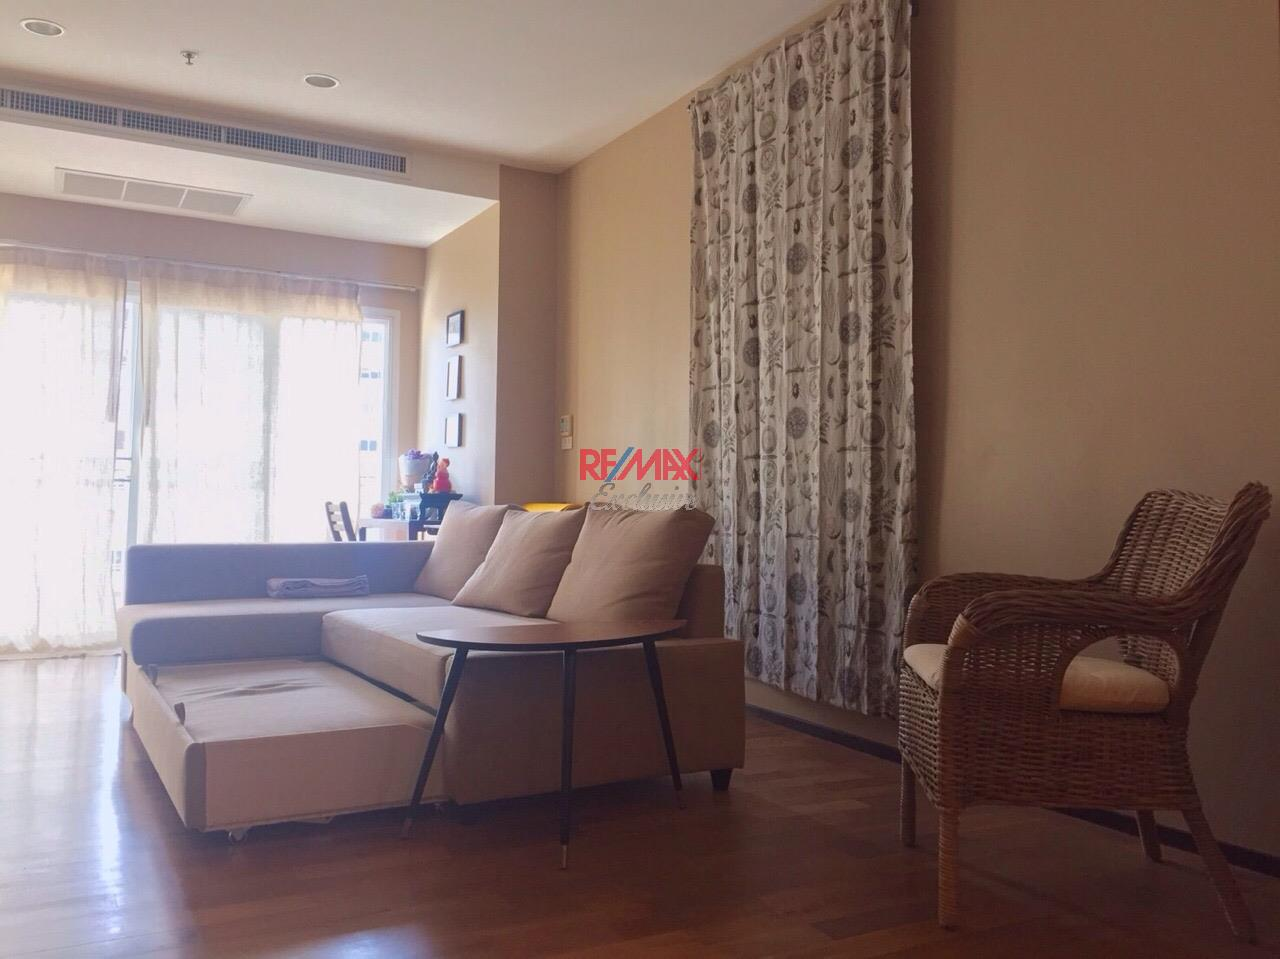 RE/MAX Exclusive Agency's Noble Ora 1 bedroom big size for salr 1